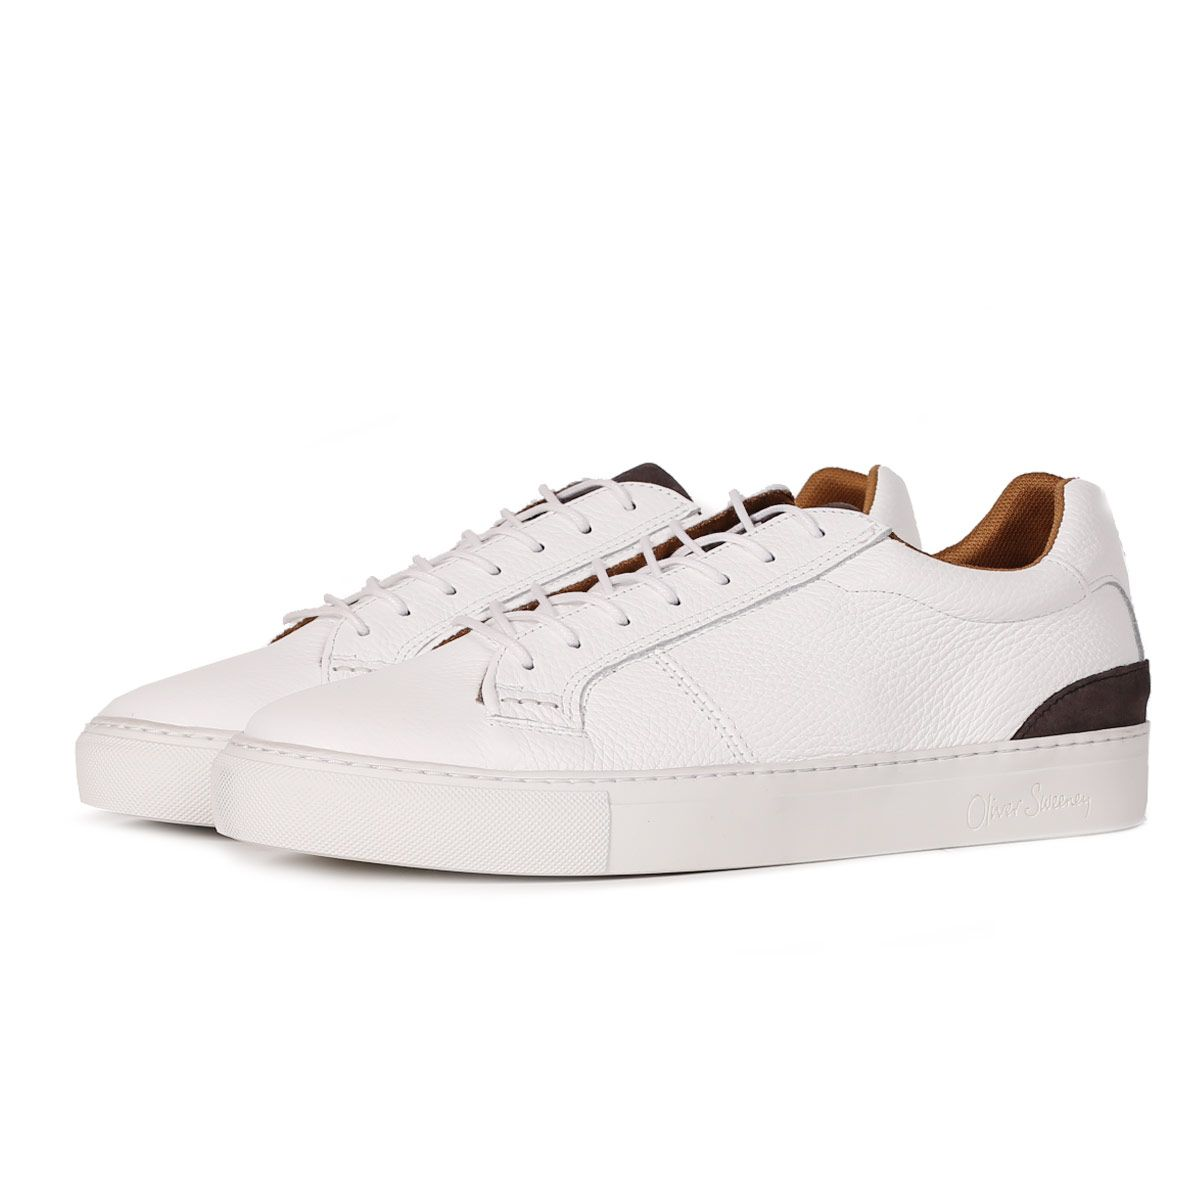 Marmelos White - Casual Leather Trainer